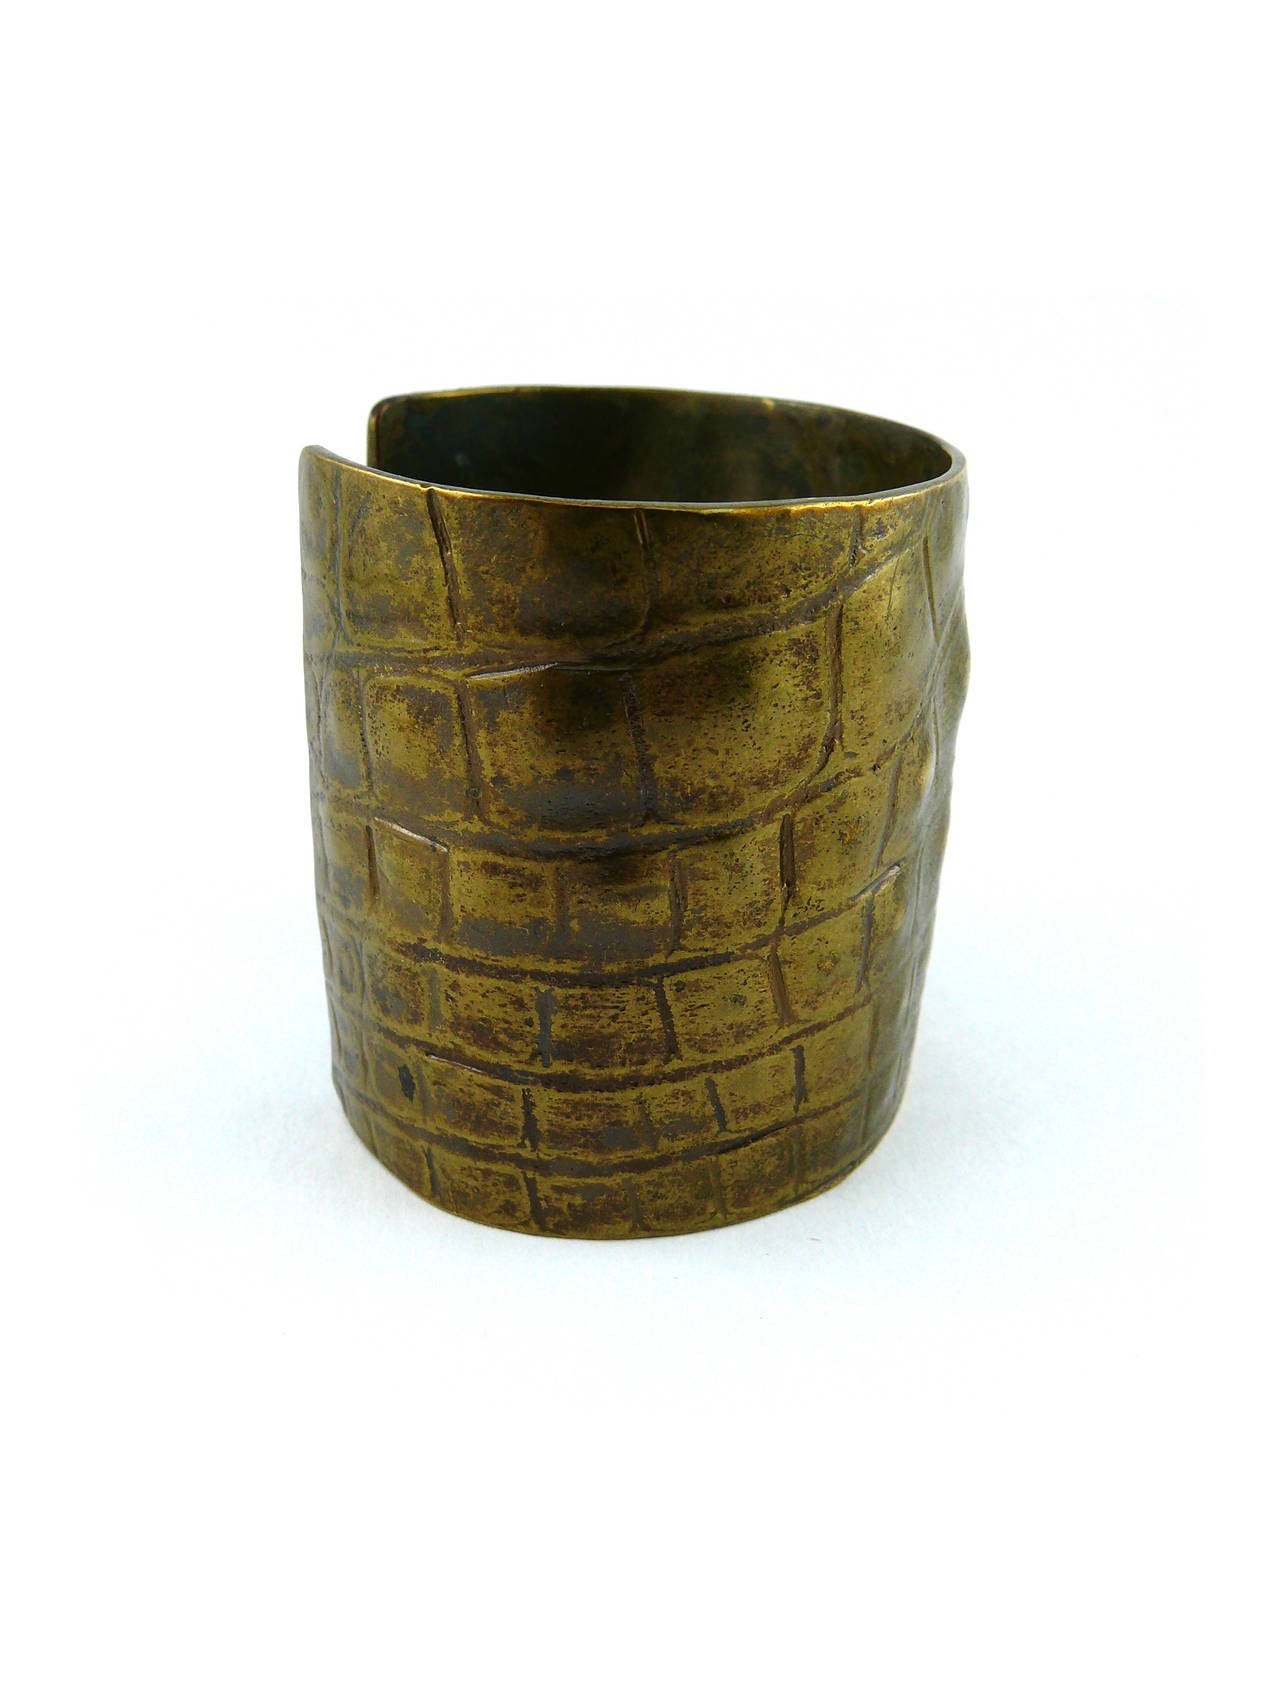 Yves Saint Laurent YSL by Tom Ford Croc-Embossed Cuff Bracelet In Excellent Condition For Sale In French Riviera, Cote d'Azur